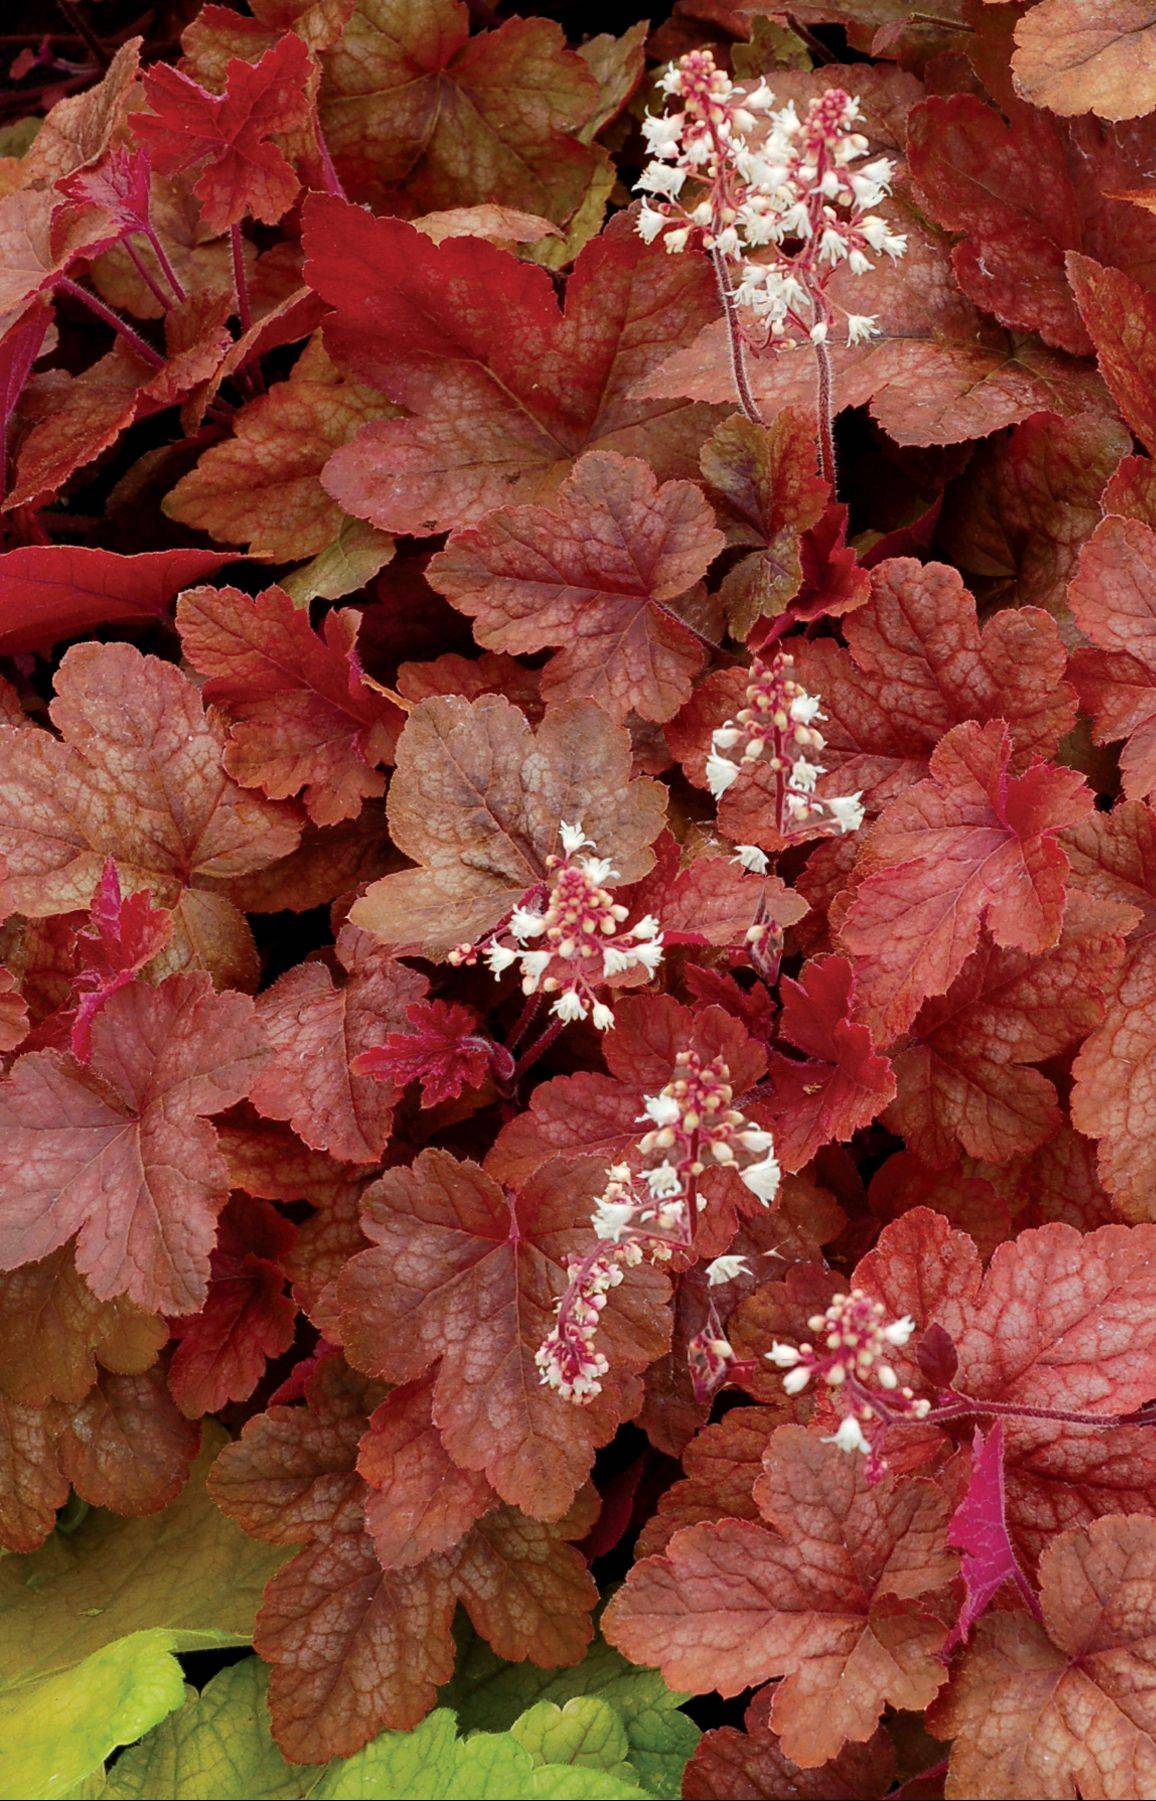 The leaves of Redstone Falls, from White Flower Farm, change in color from cinnamon peach to copper to amber green.